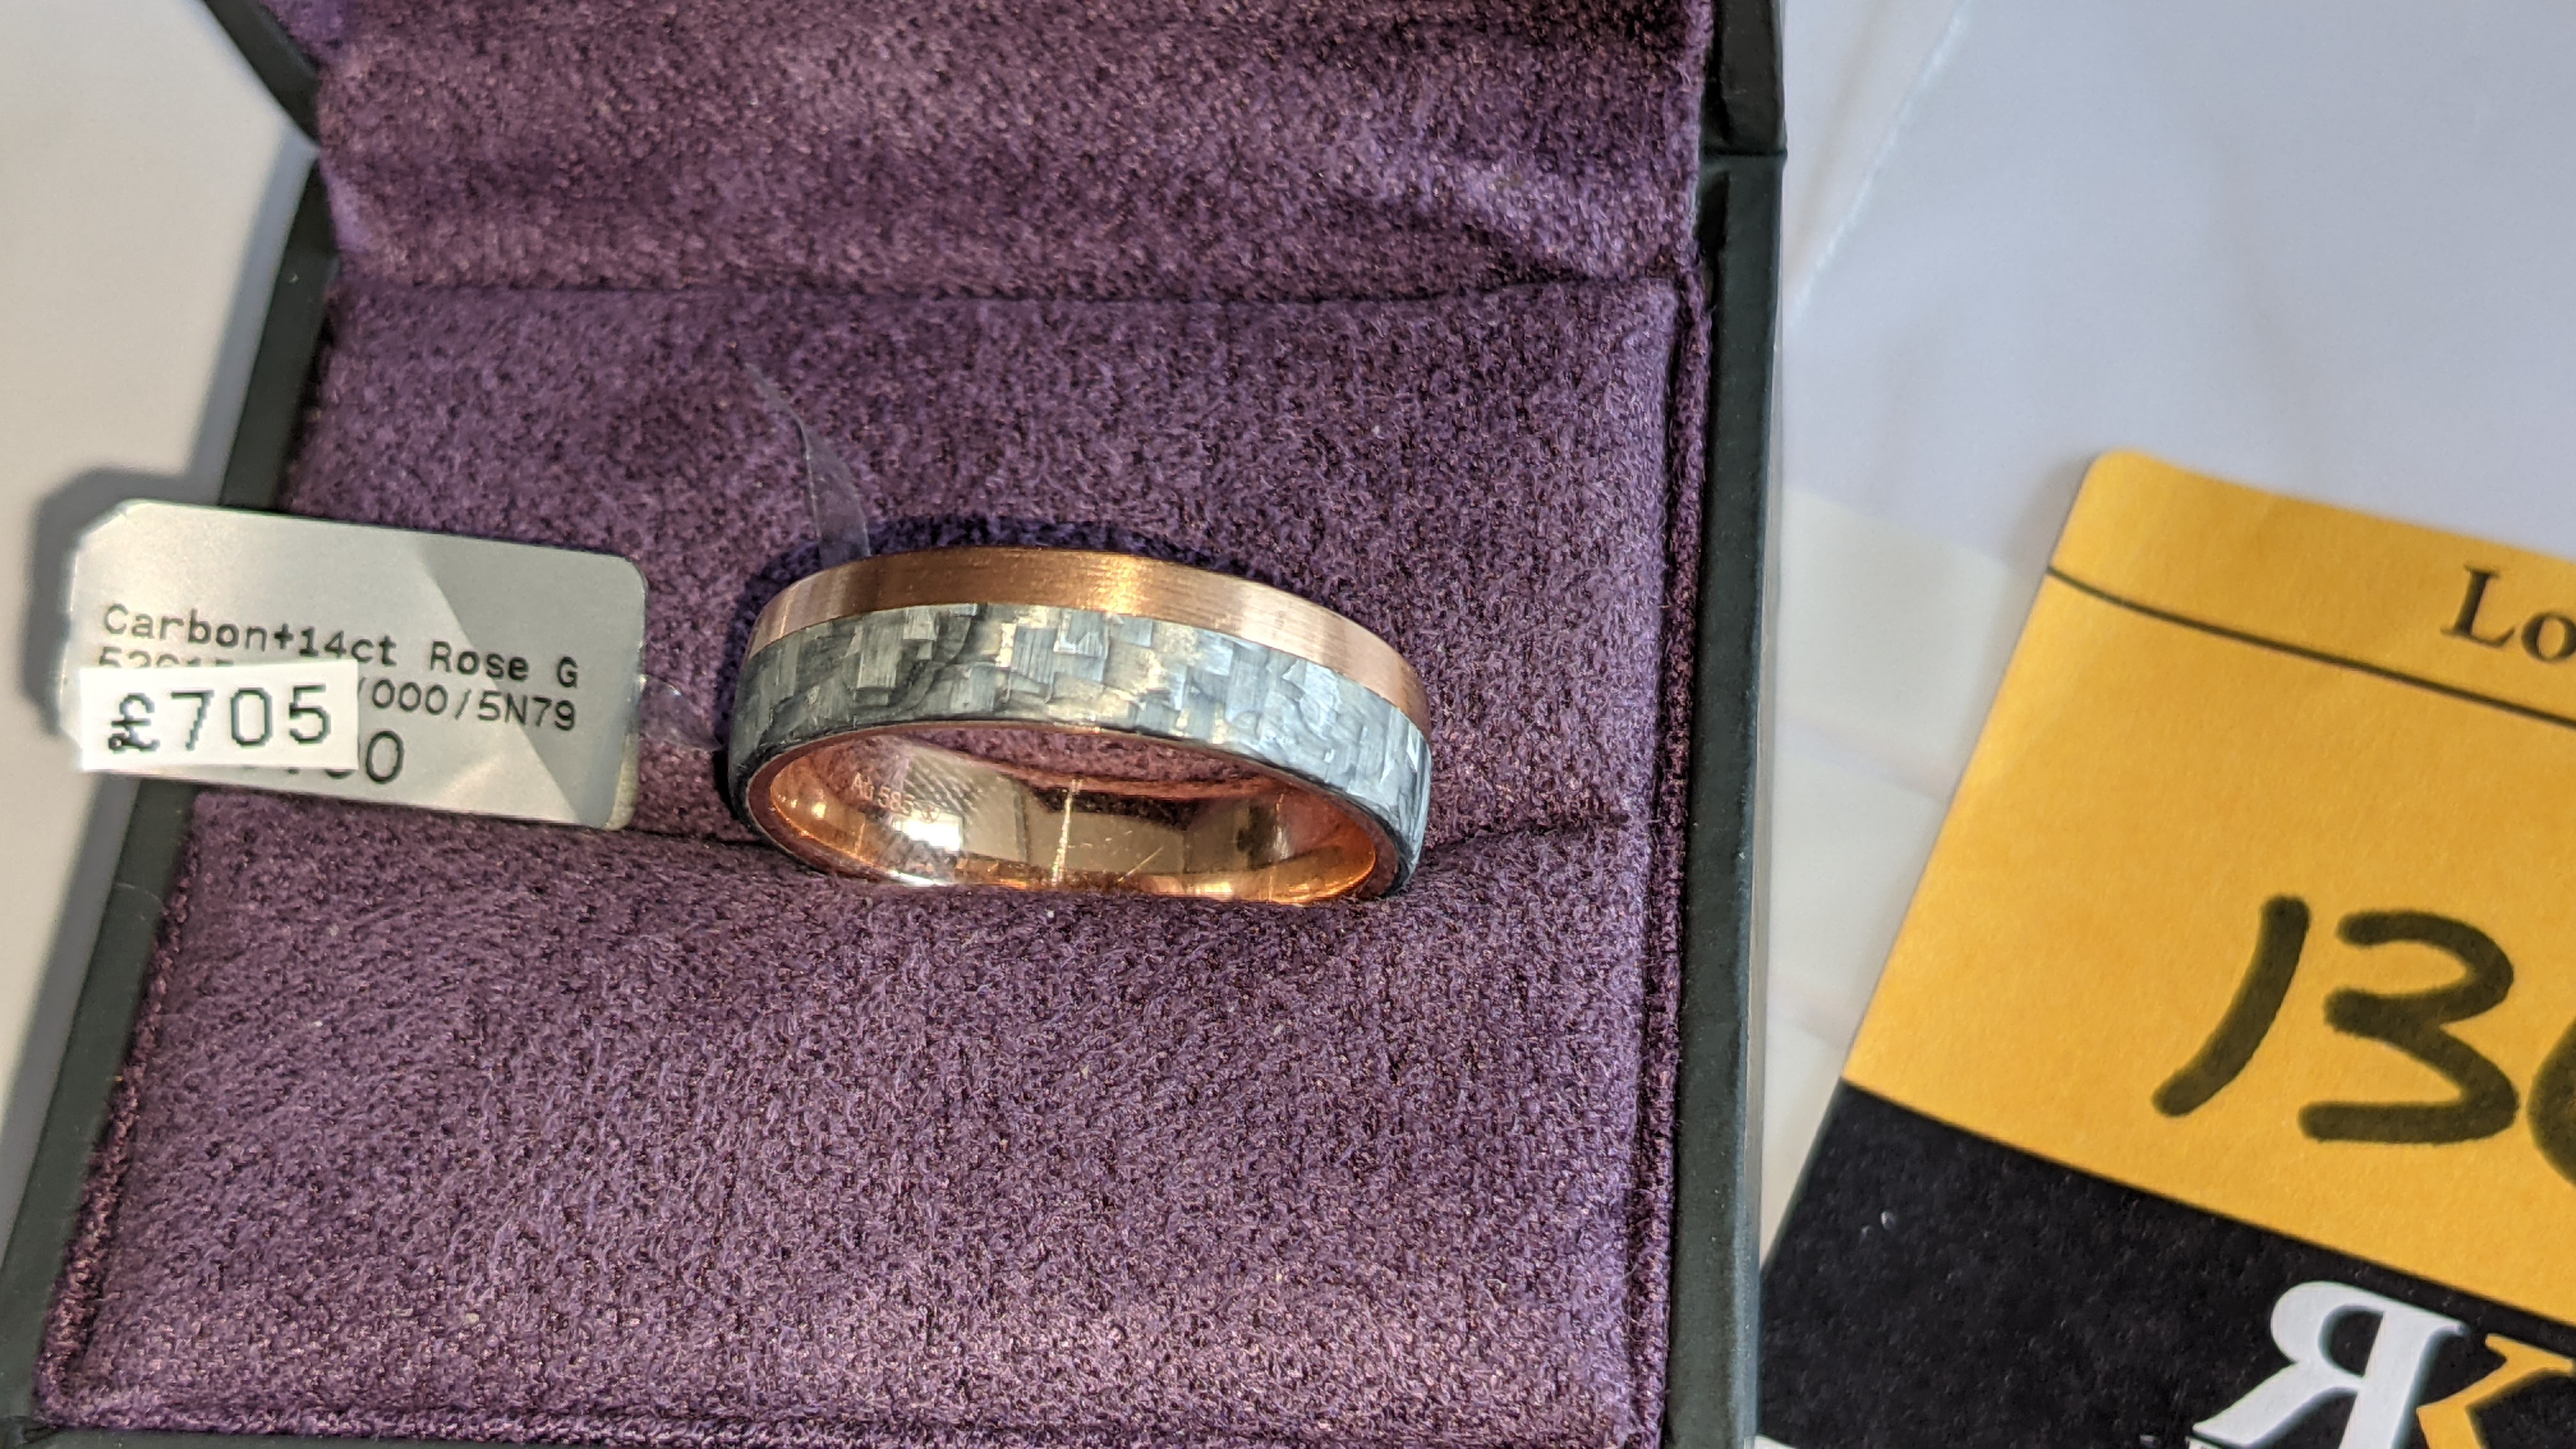 Carbon & 14ct rose gold ring RRP £705 - Image 5 of 13